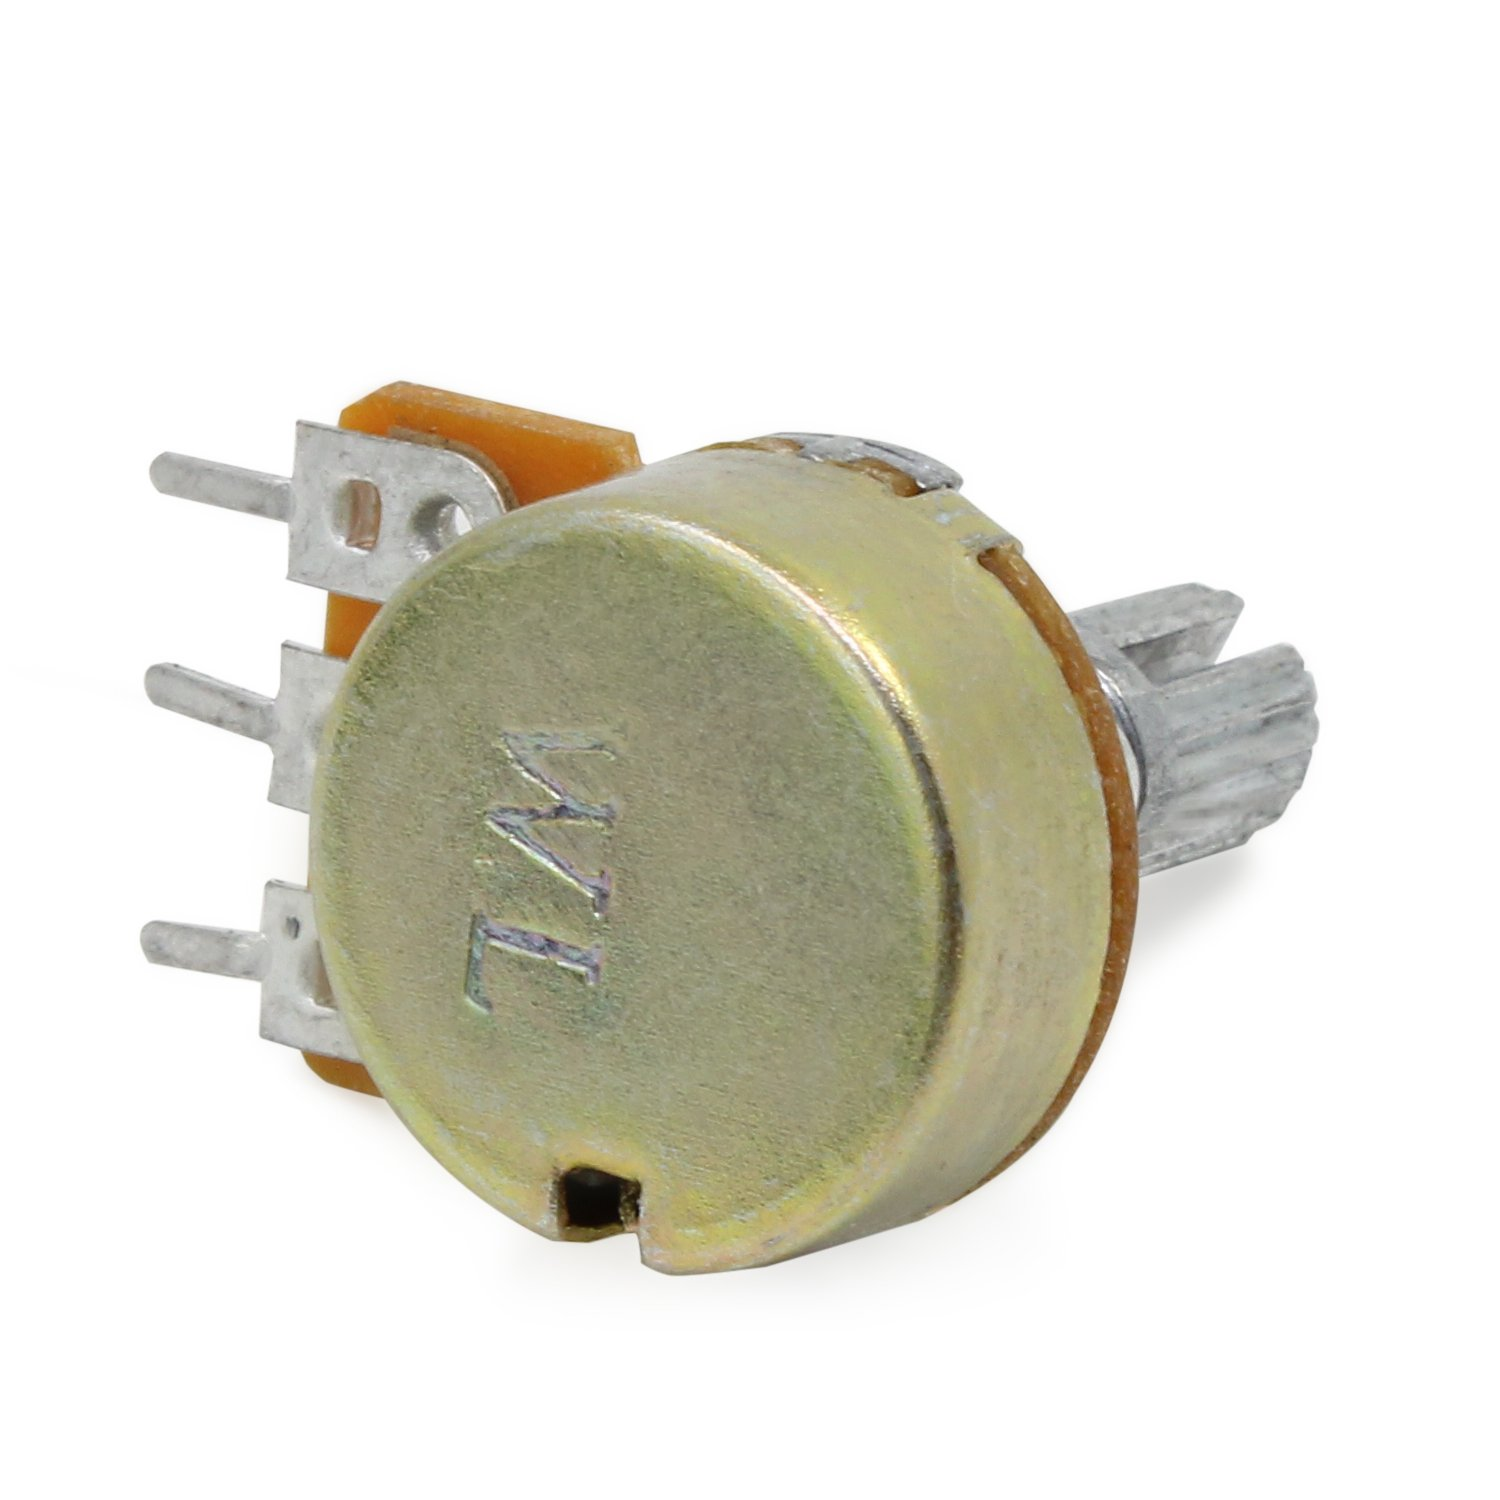 AIKE 1K 2K 5K 10K 20K 50K 100K 500K 1M Linear Potentiometer w/Knob Assortment by AIKE (Image #6)